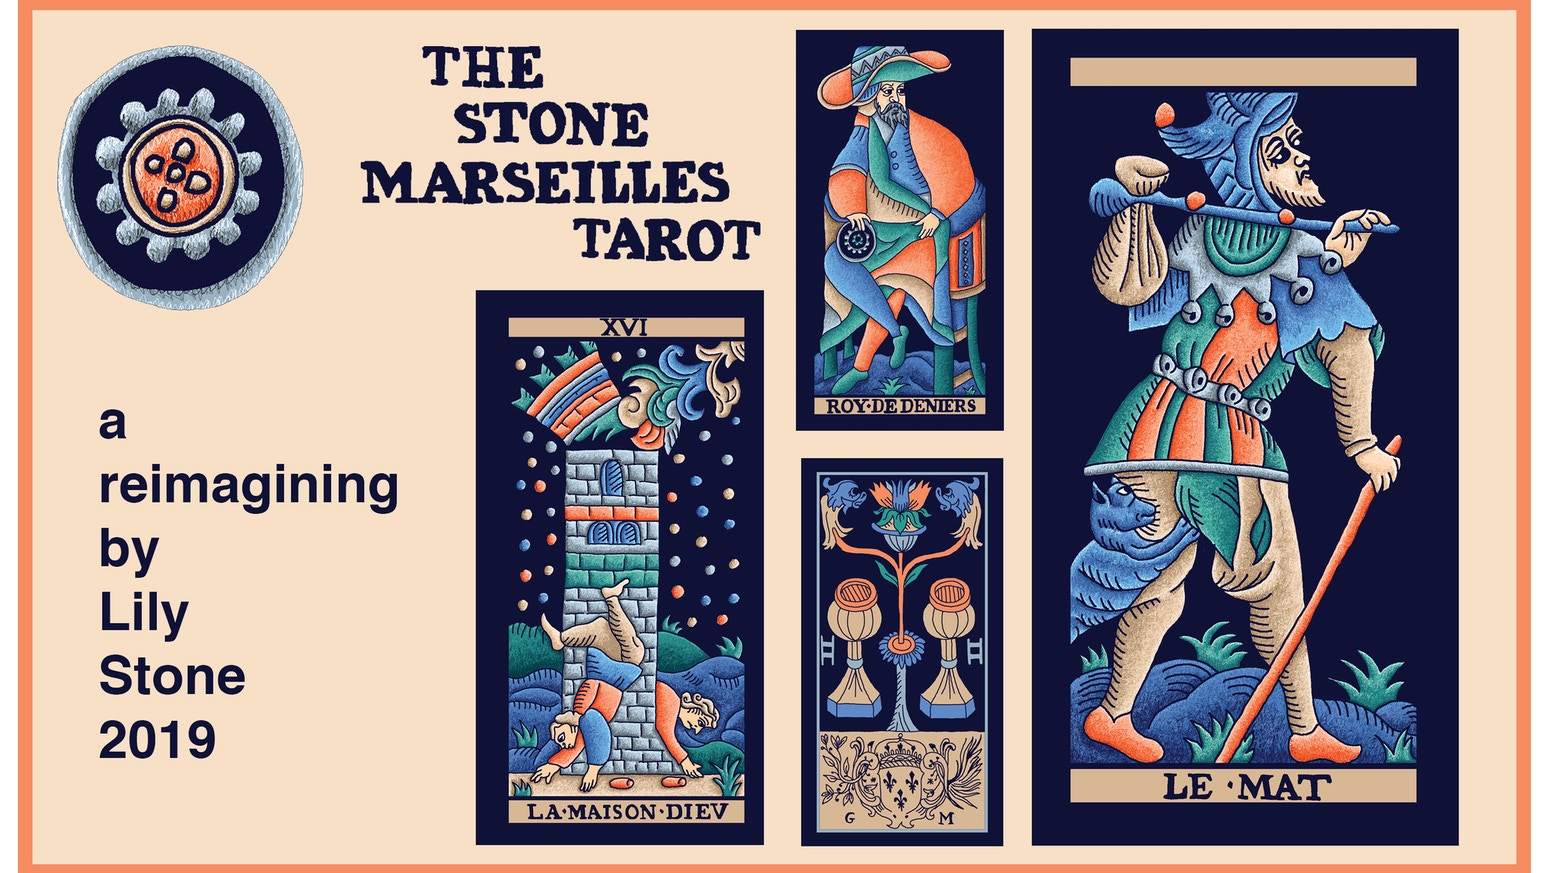 A new tarot deck based on the Marseilles Tarot of Nicolas Conver, circa 1760, reimagined with new depth, color and texture.